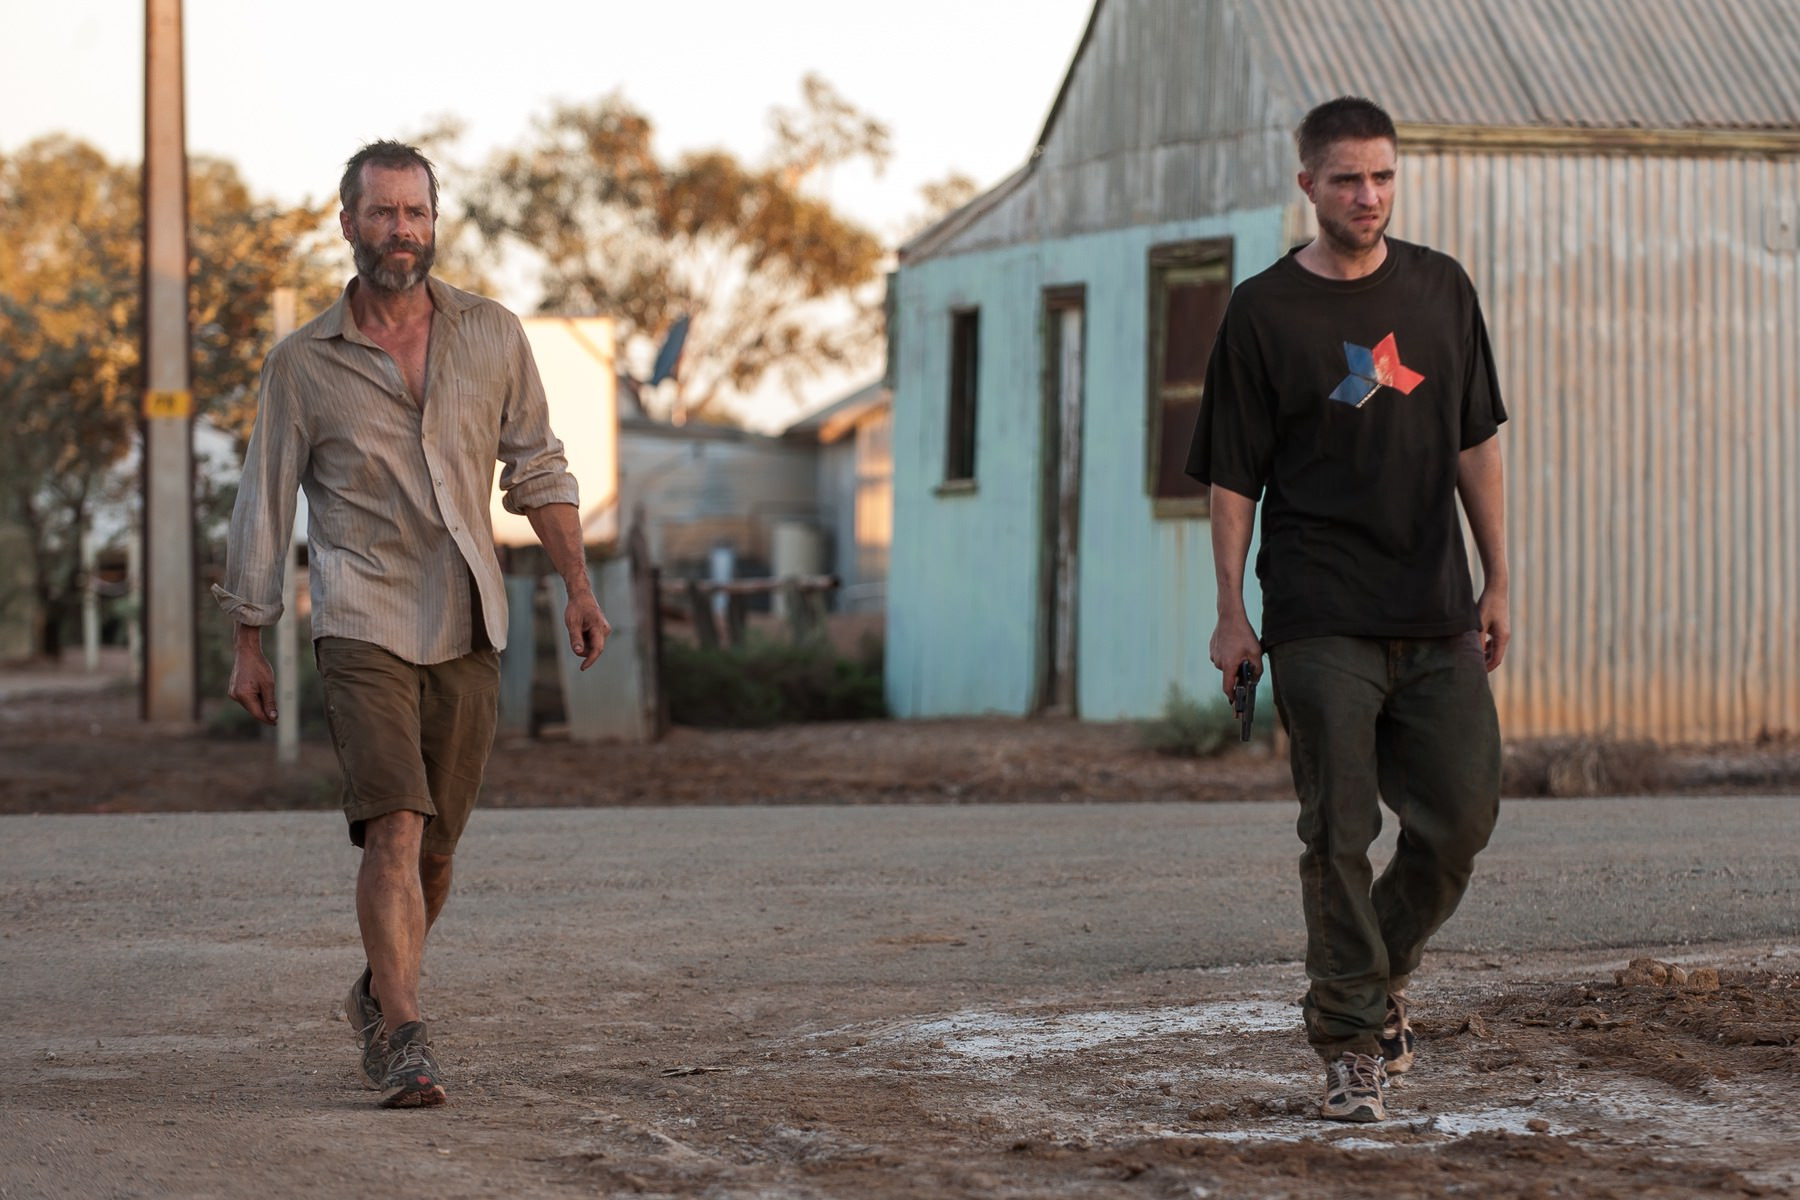 The rover david michod guy pearce robert pattinson